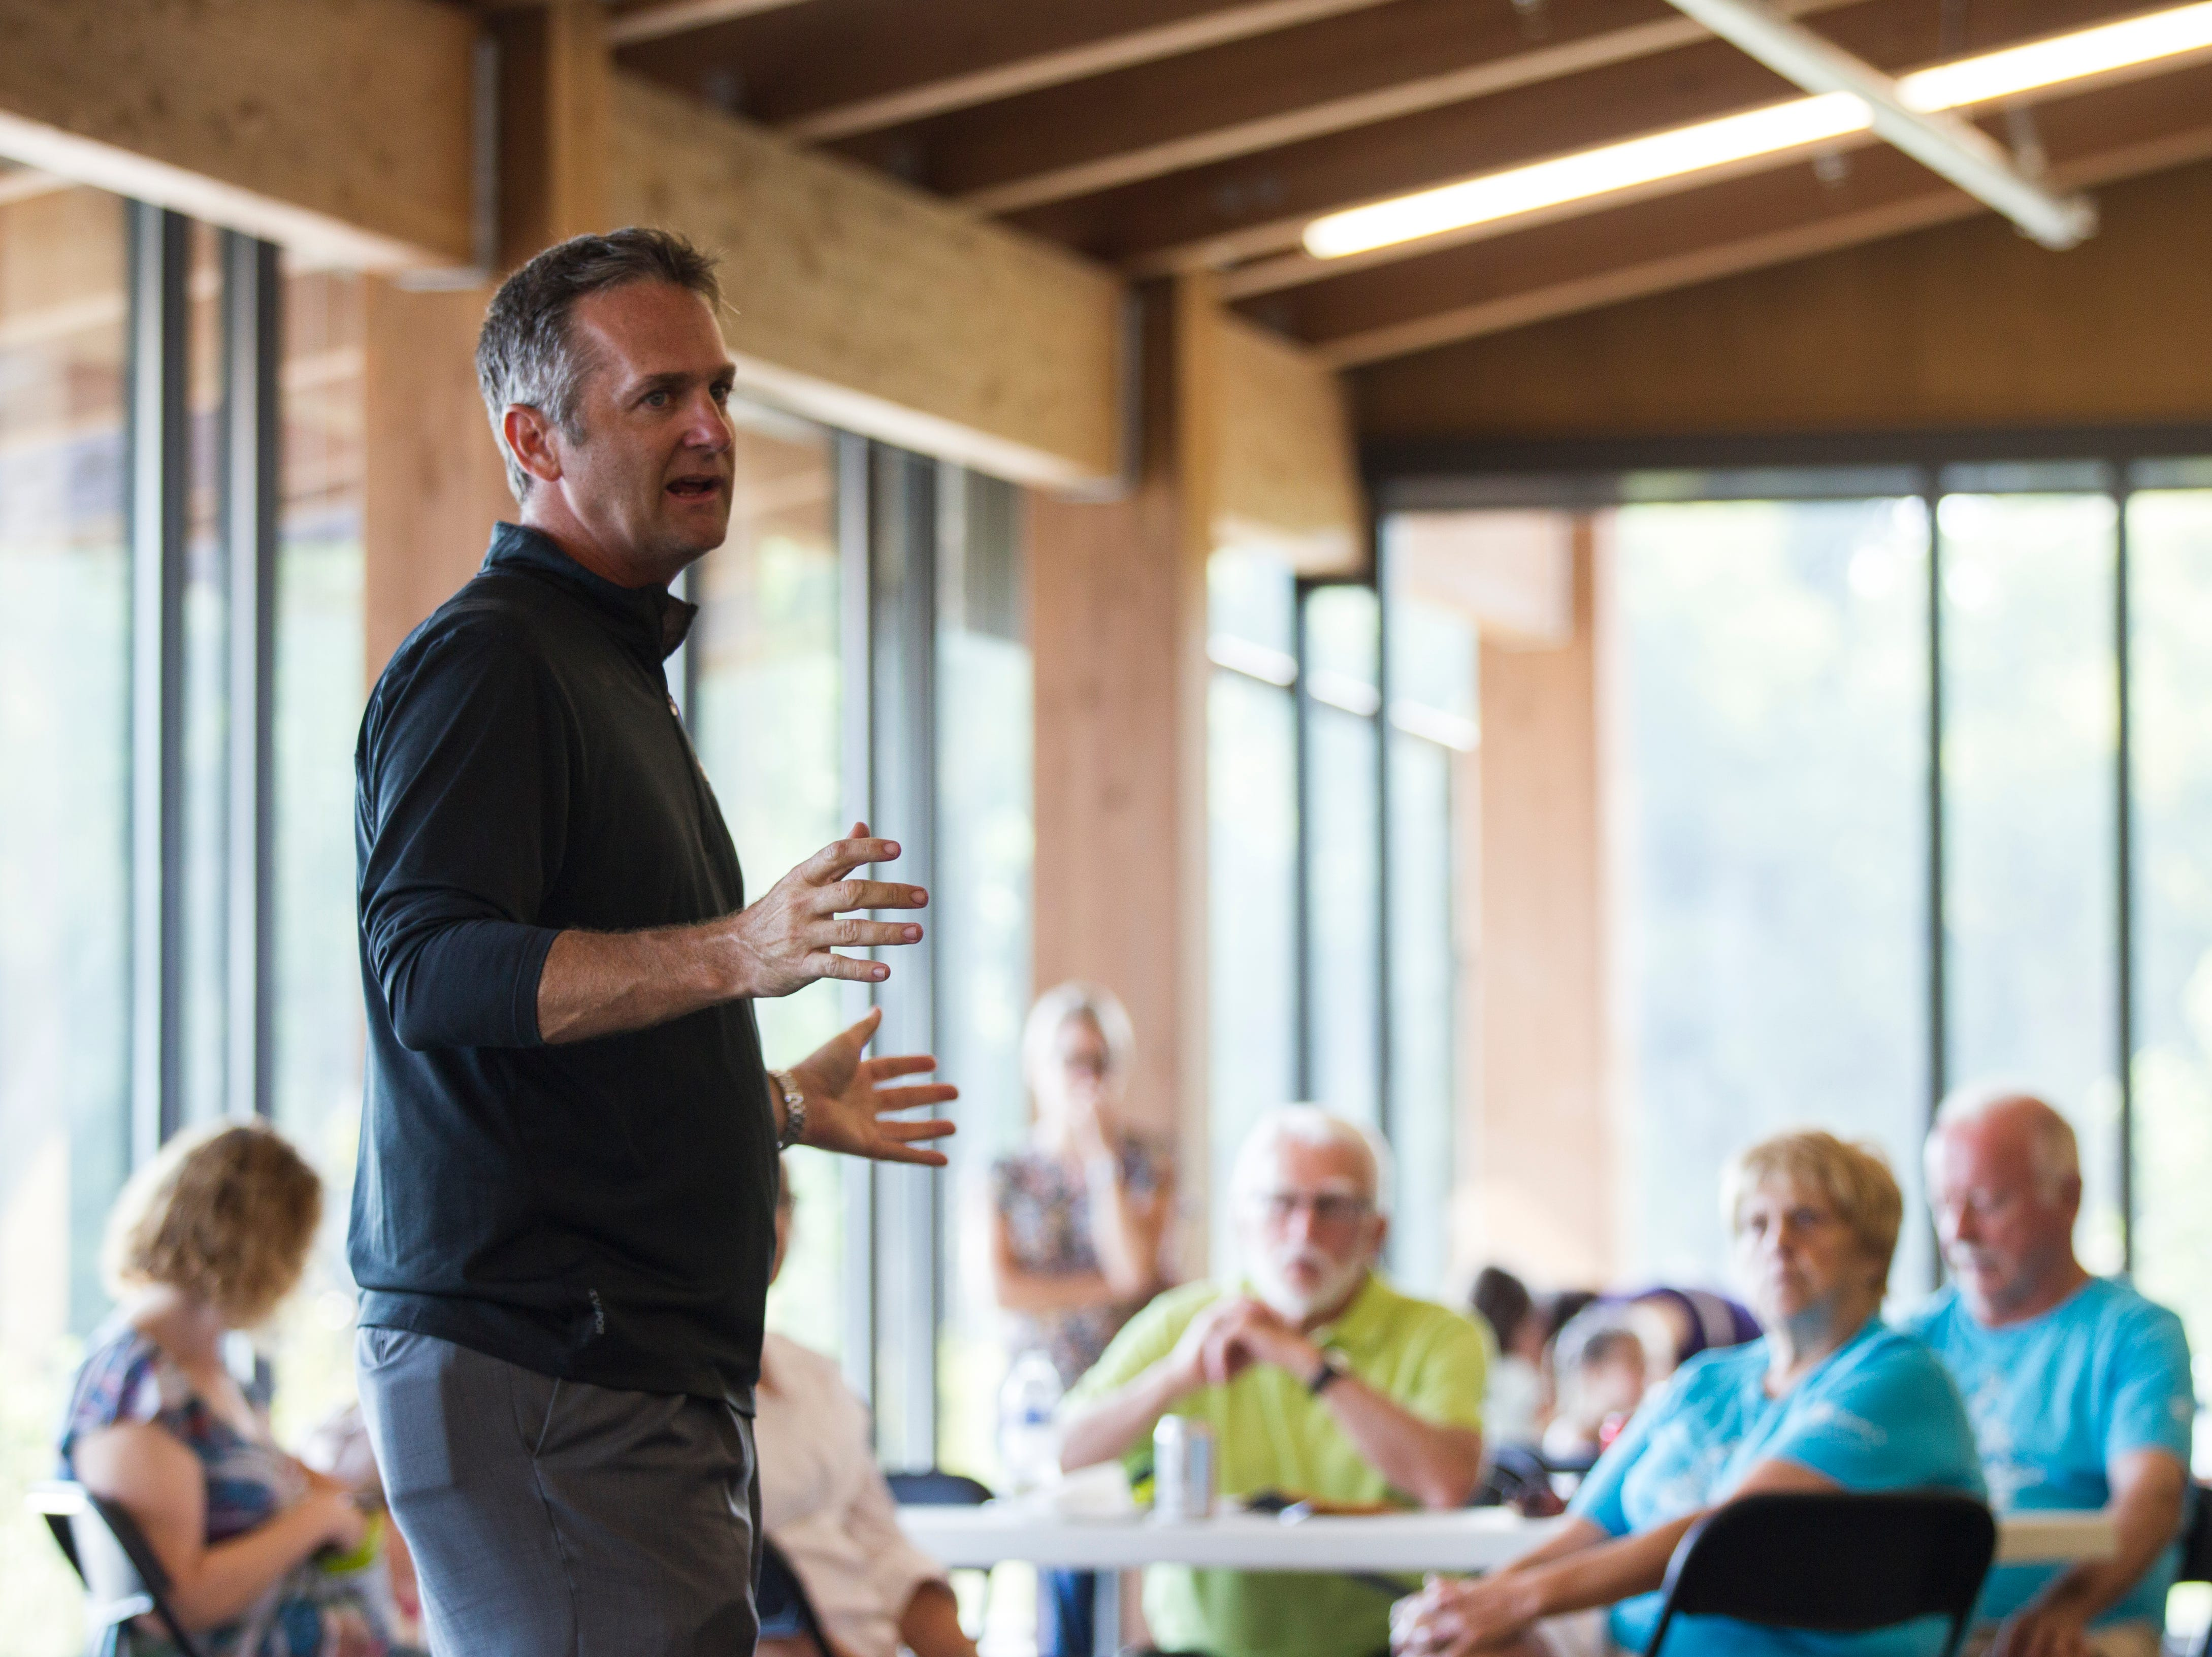 Josh Schamberger, president of Think Iowa City, speaks during an event for Iowa City RAGBRAI volunteers on Monday, Aug. 27, 2018, inside the Park Lodge at Terry Trueblood Recreation Area in Iowa City.